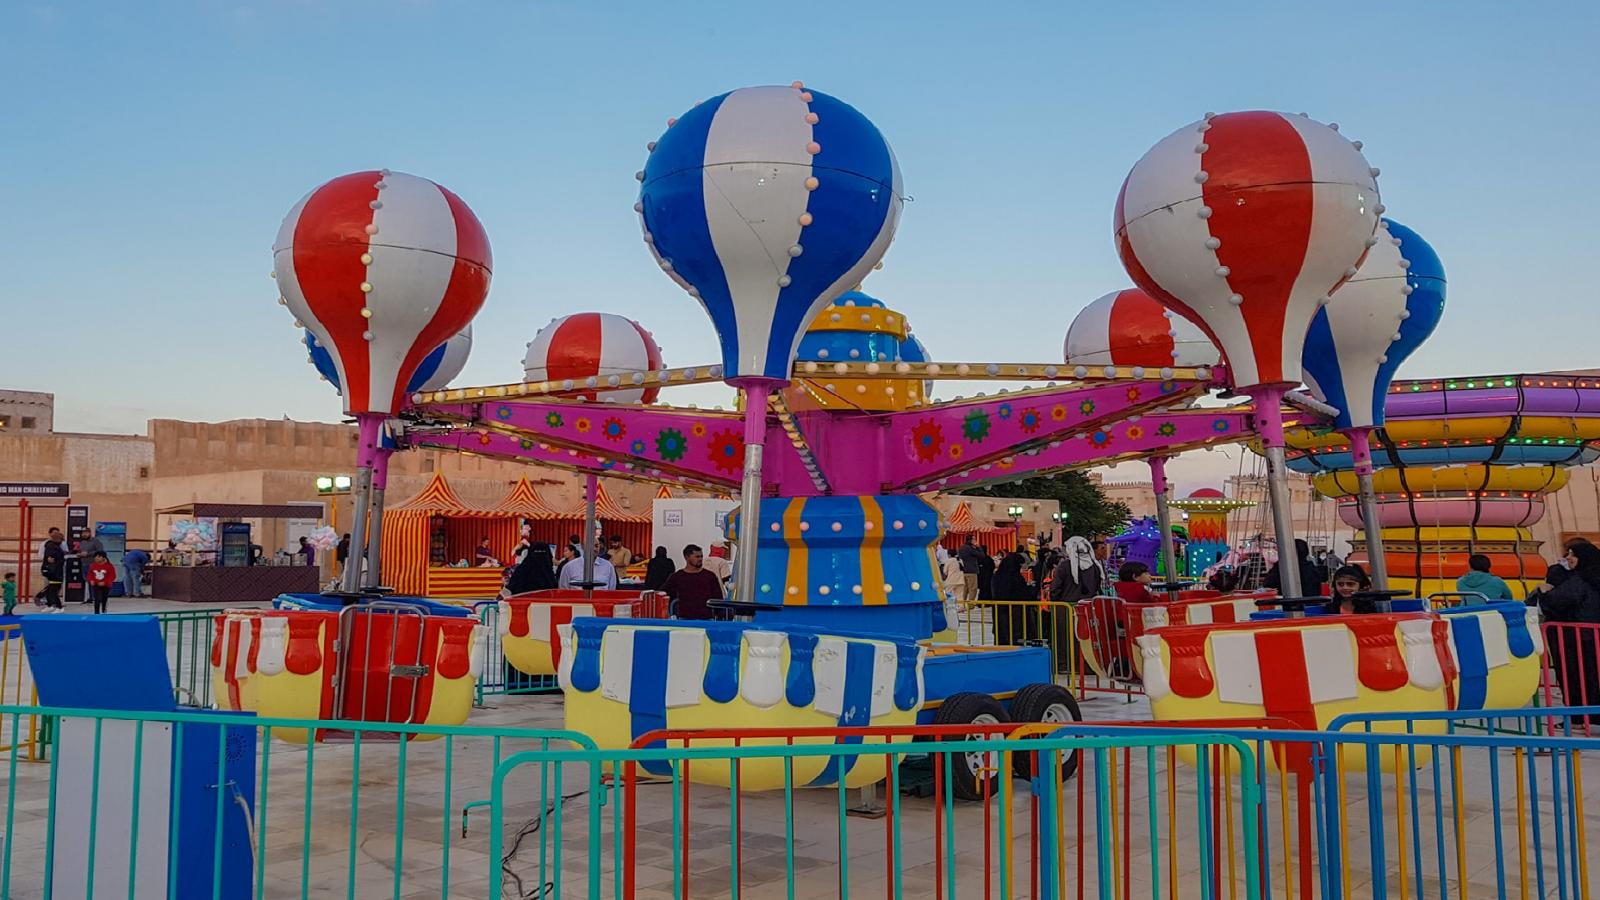 Spring Festival spreads joy at Souq Waqif and Souq Al Wakrah